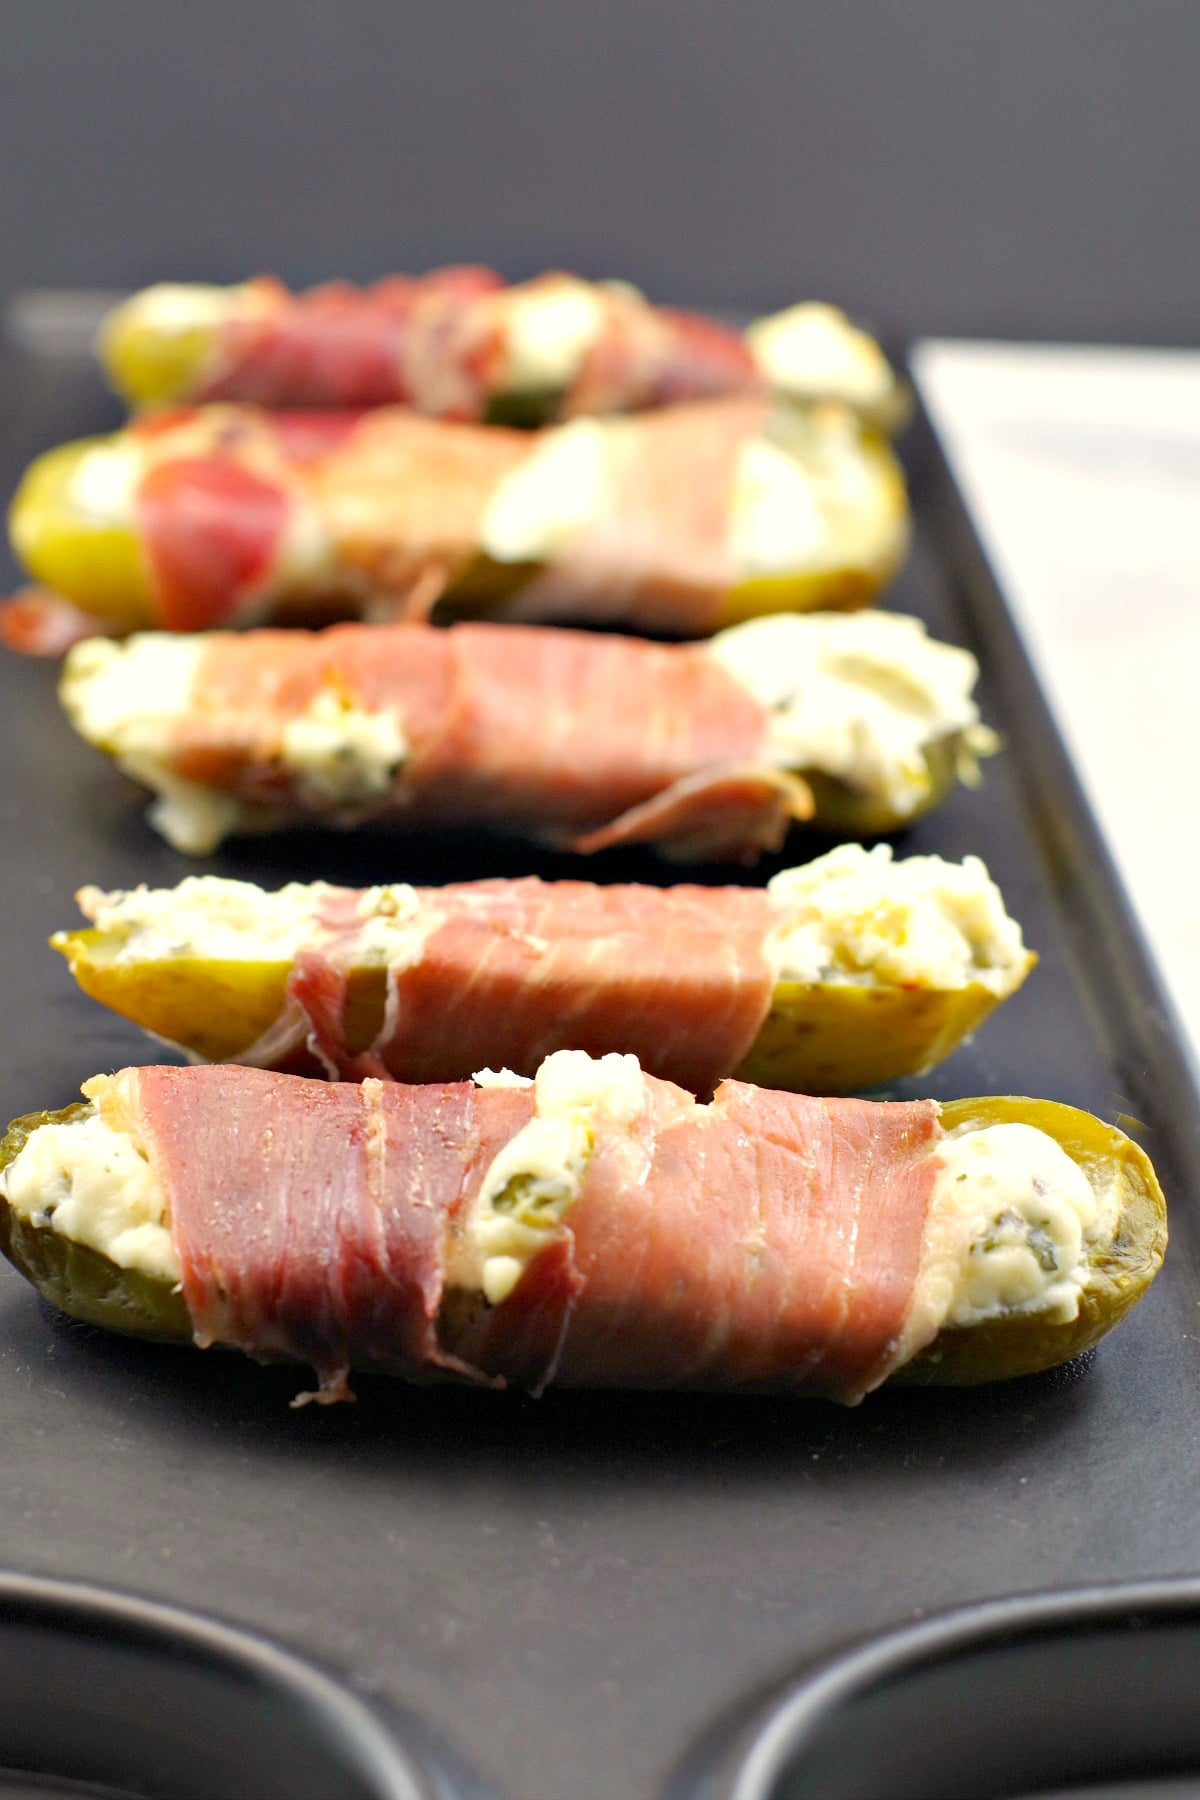 Prosciutto wrapped boursin stuffed pickles on a black tray